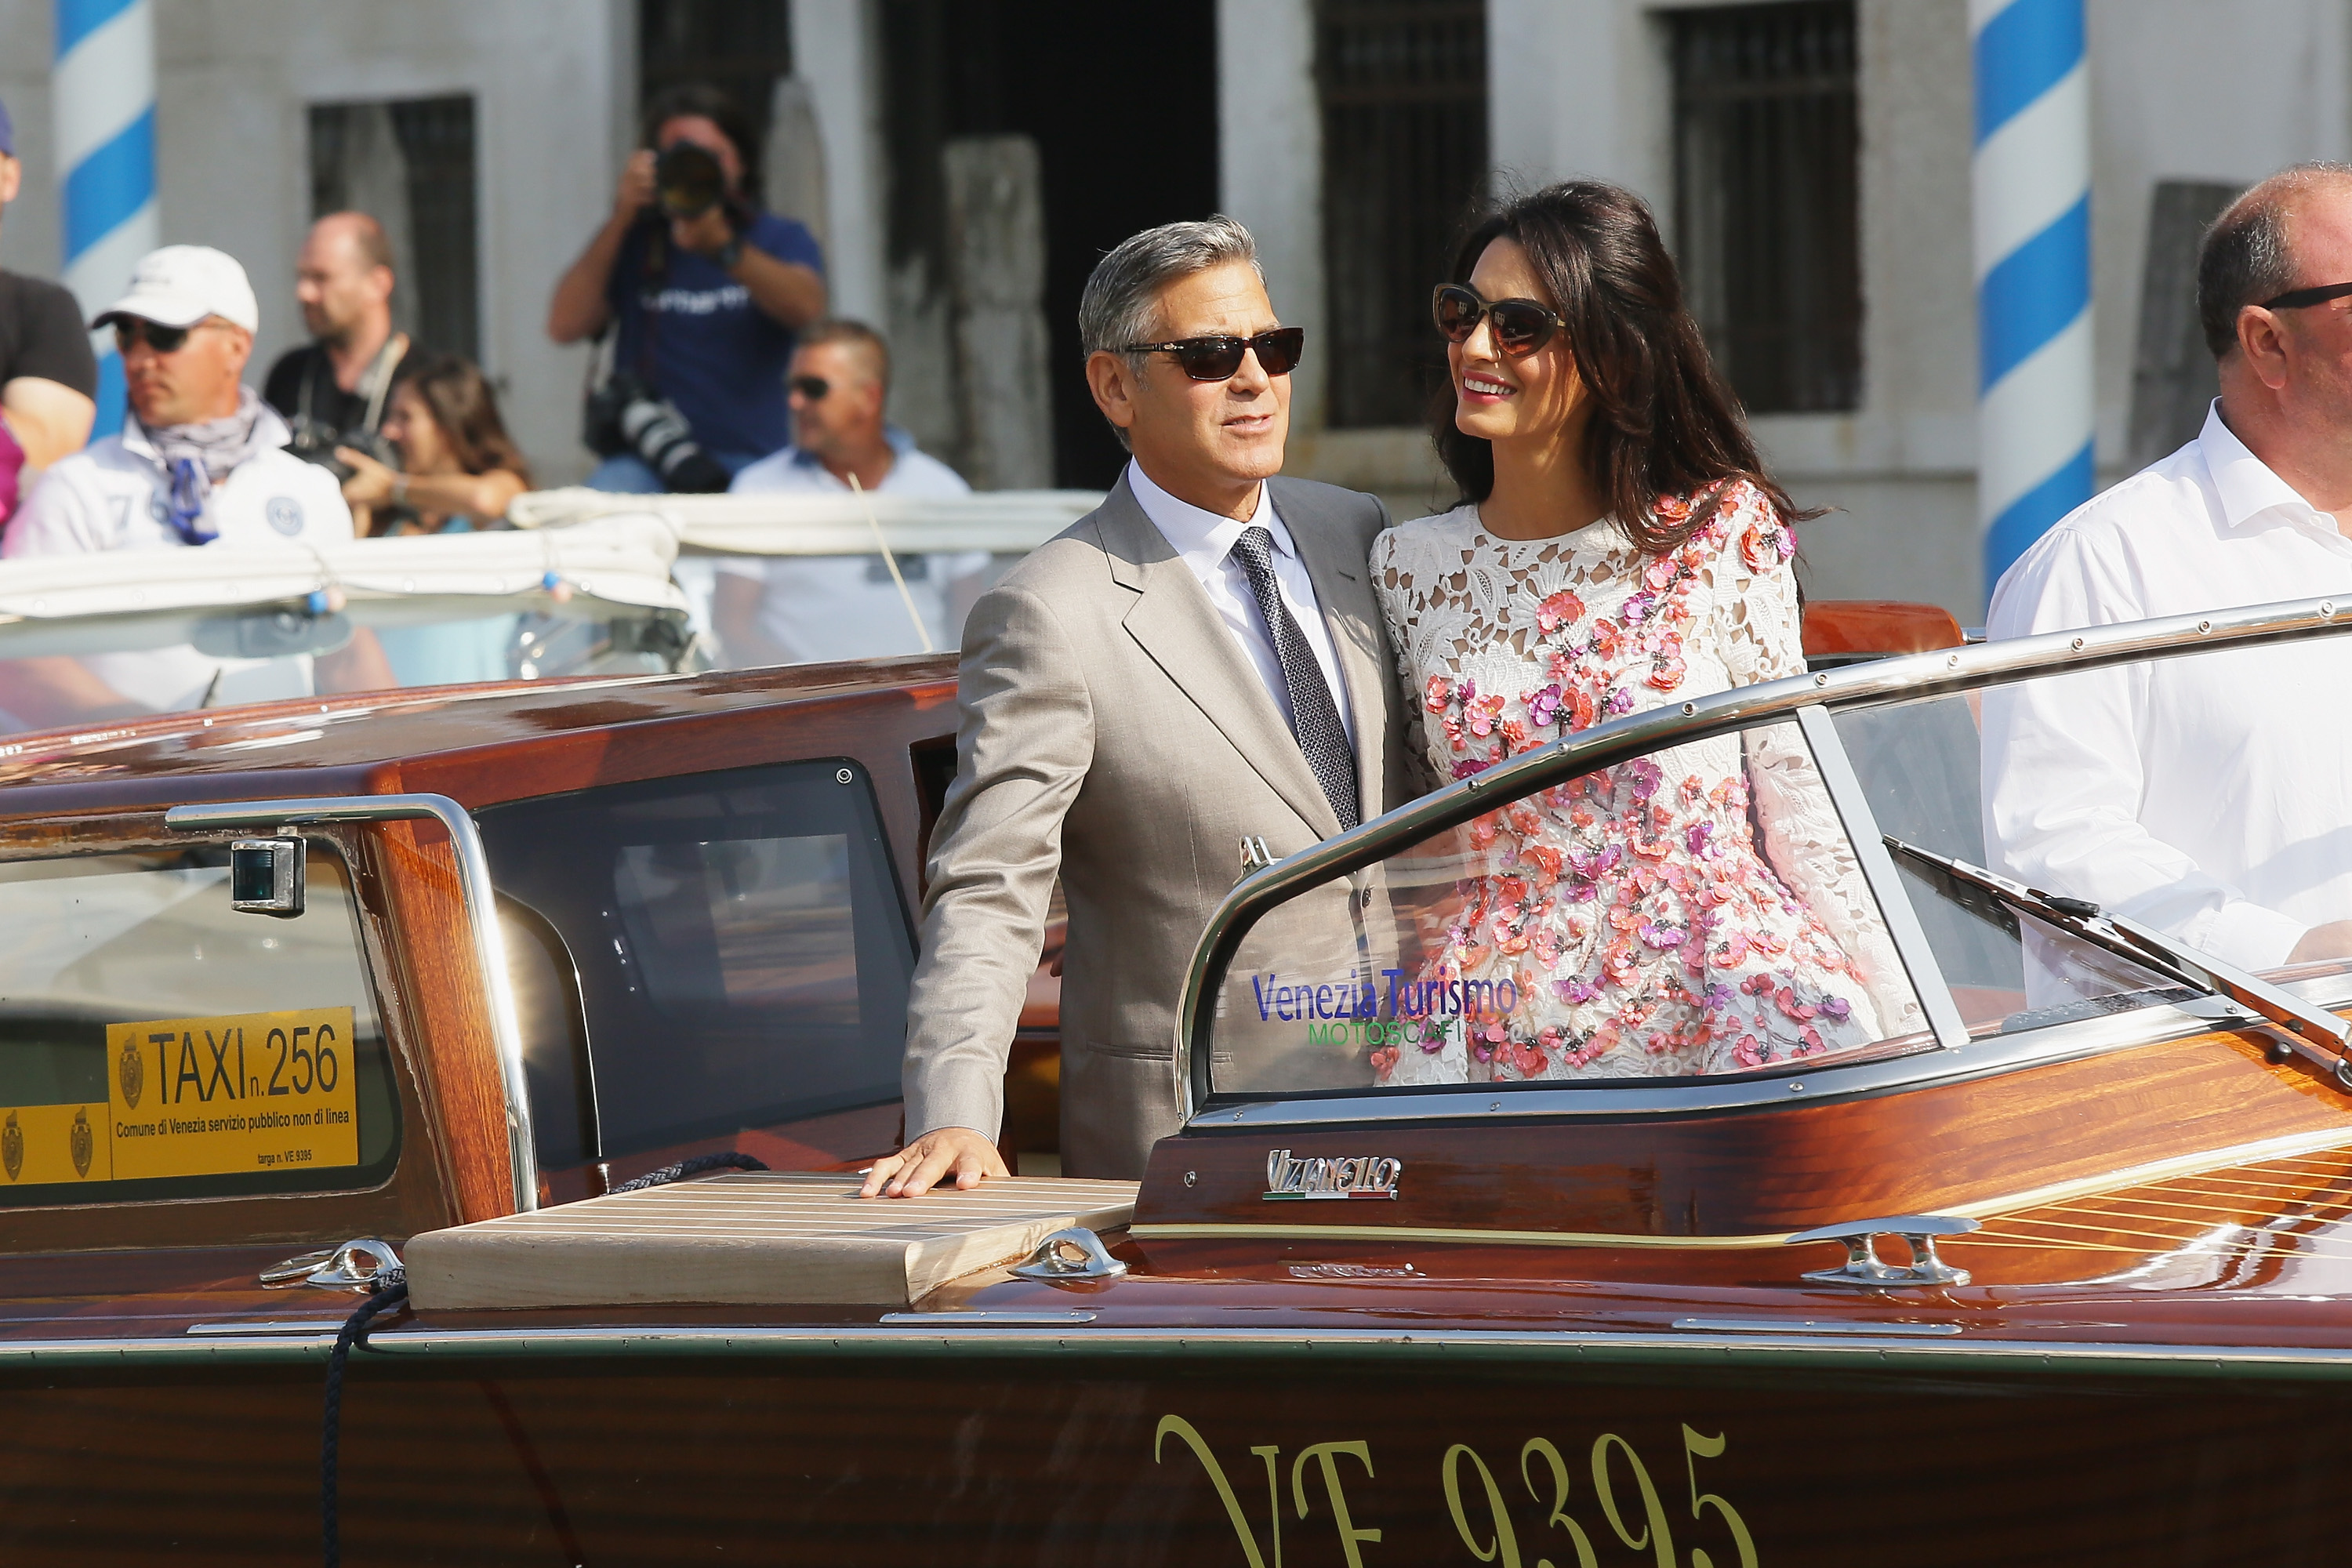 All the photos from George and Amal's wedding weekend